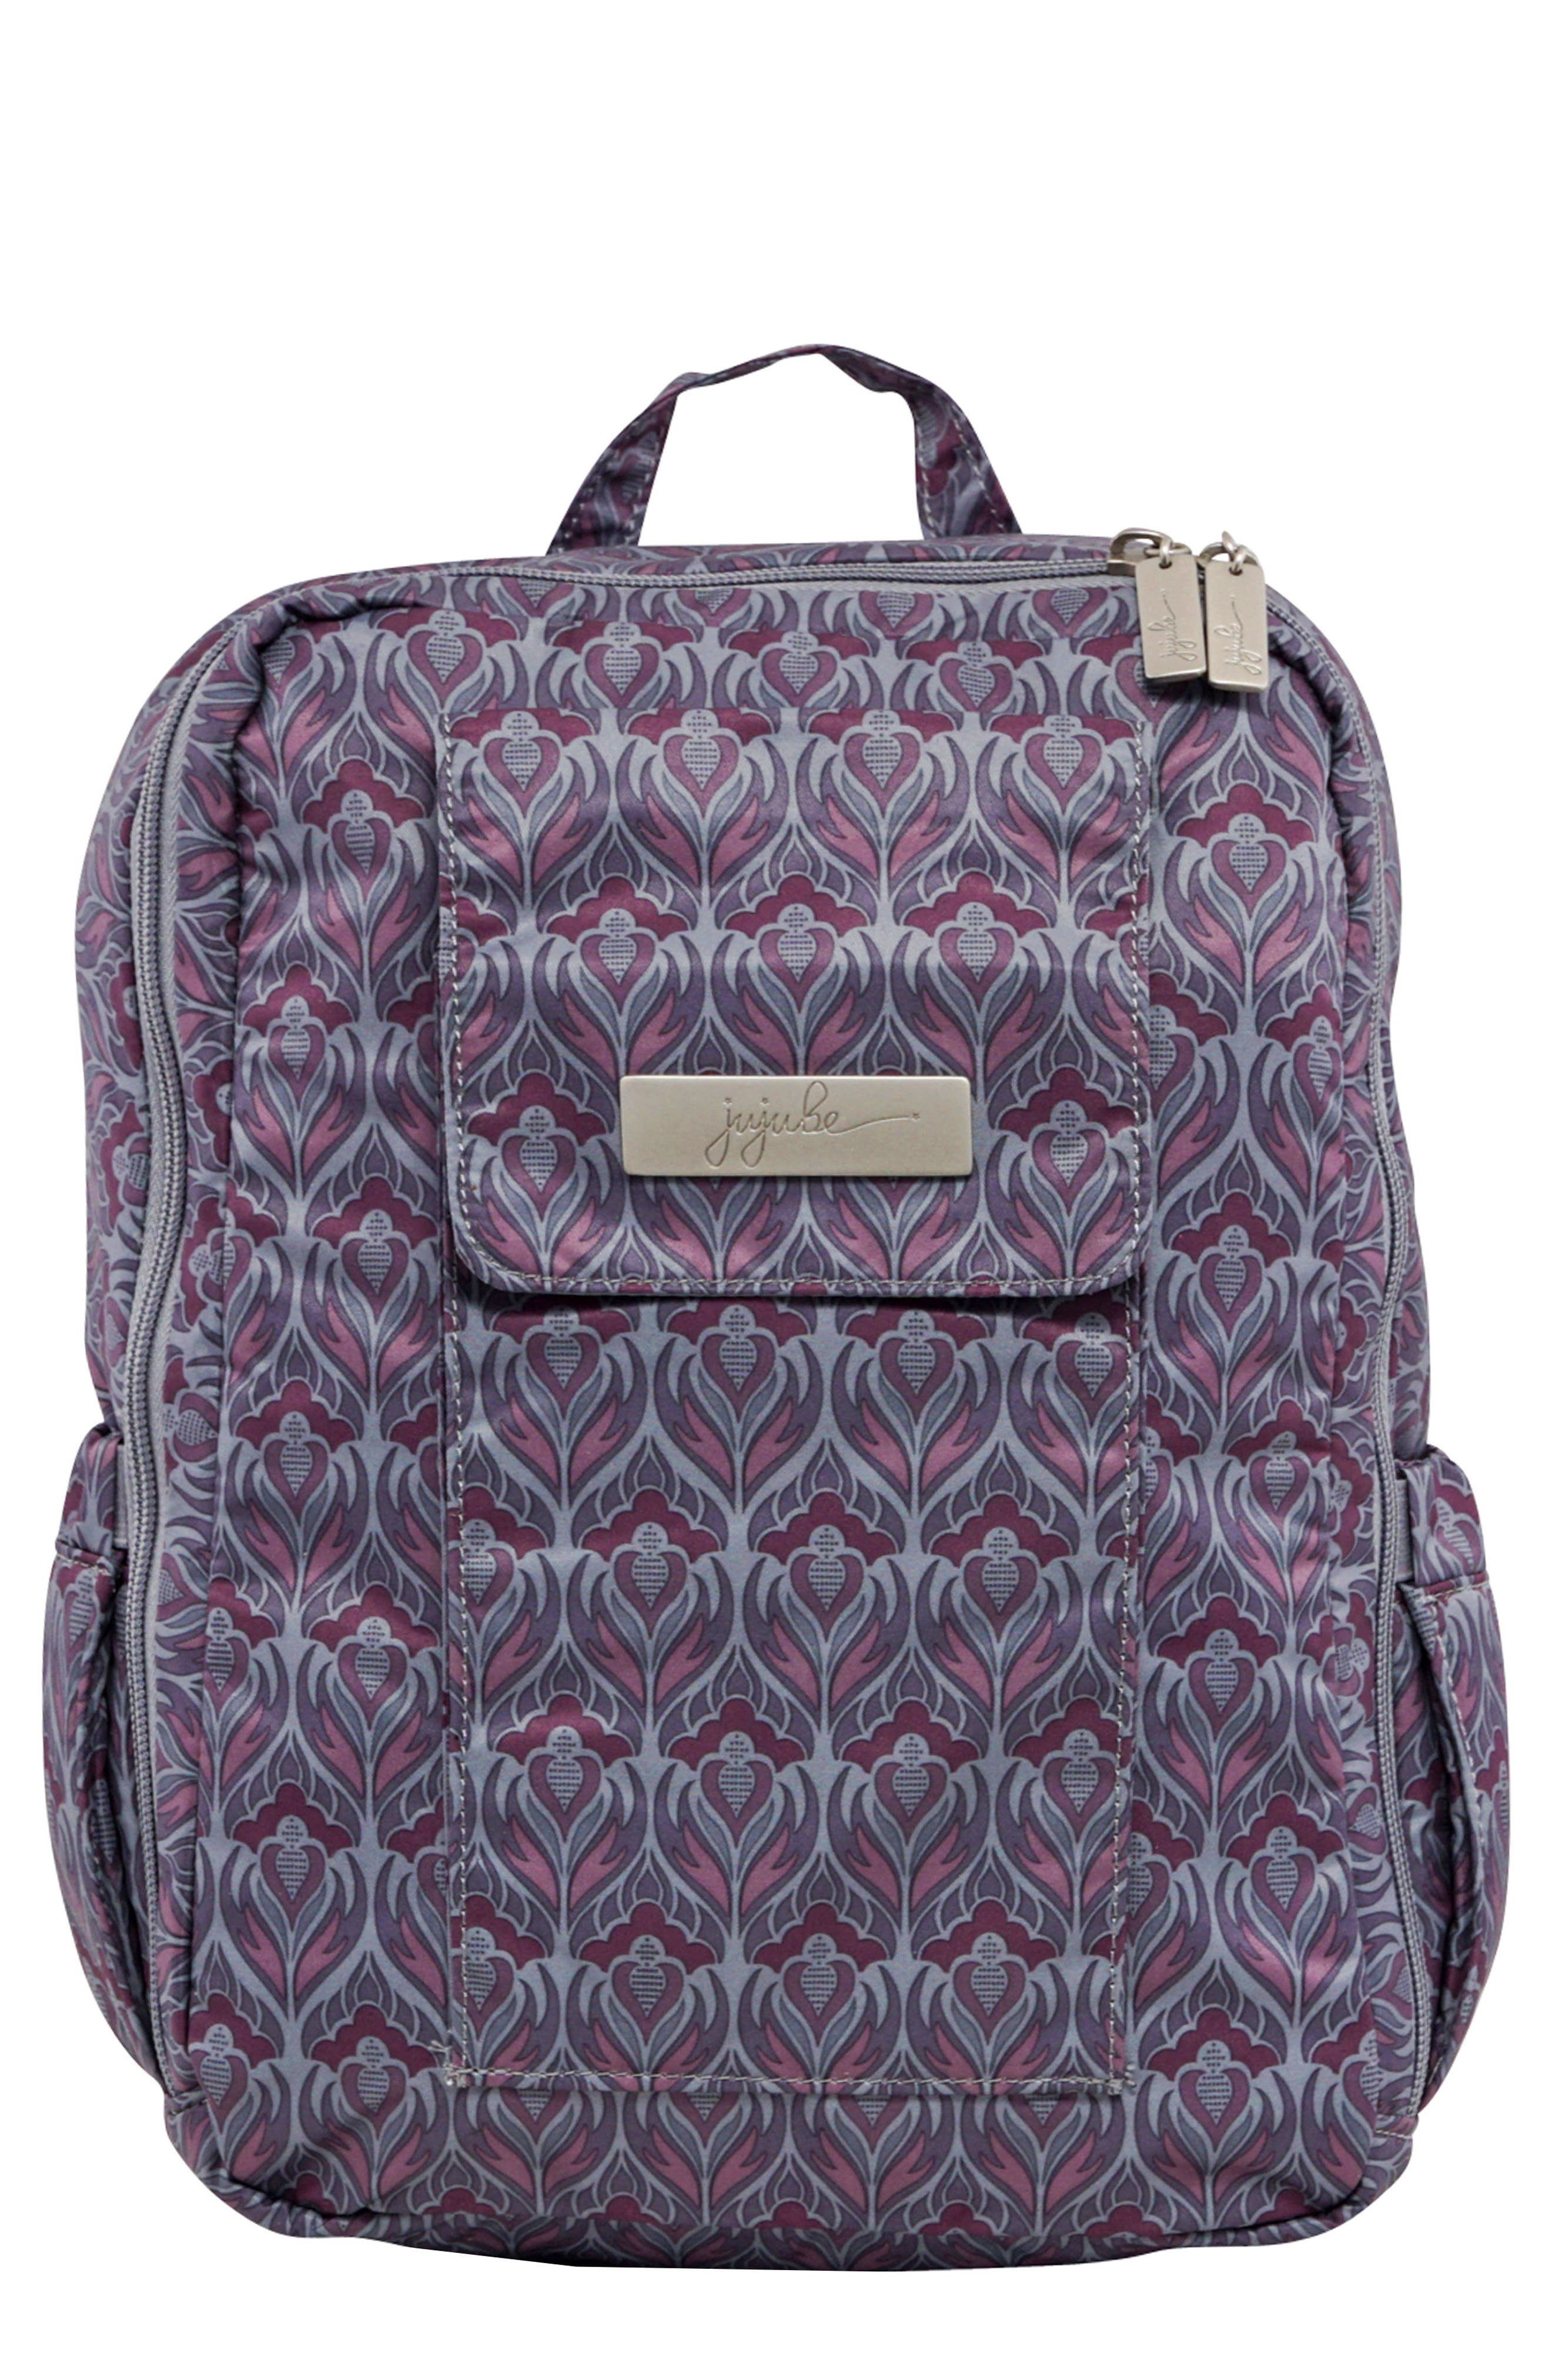 'Mini Be' Backpack,                         Main,                         color, 020